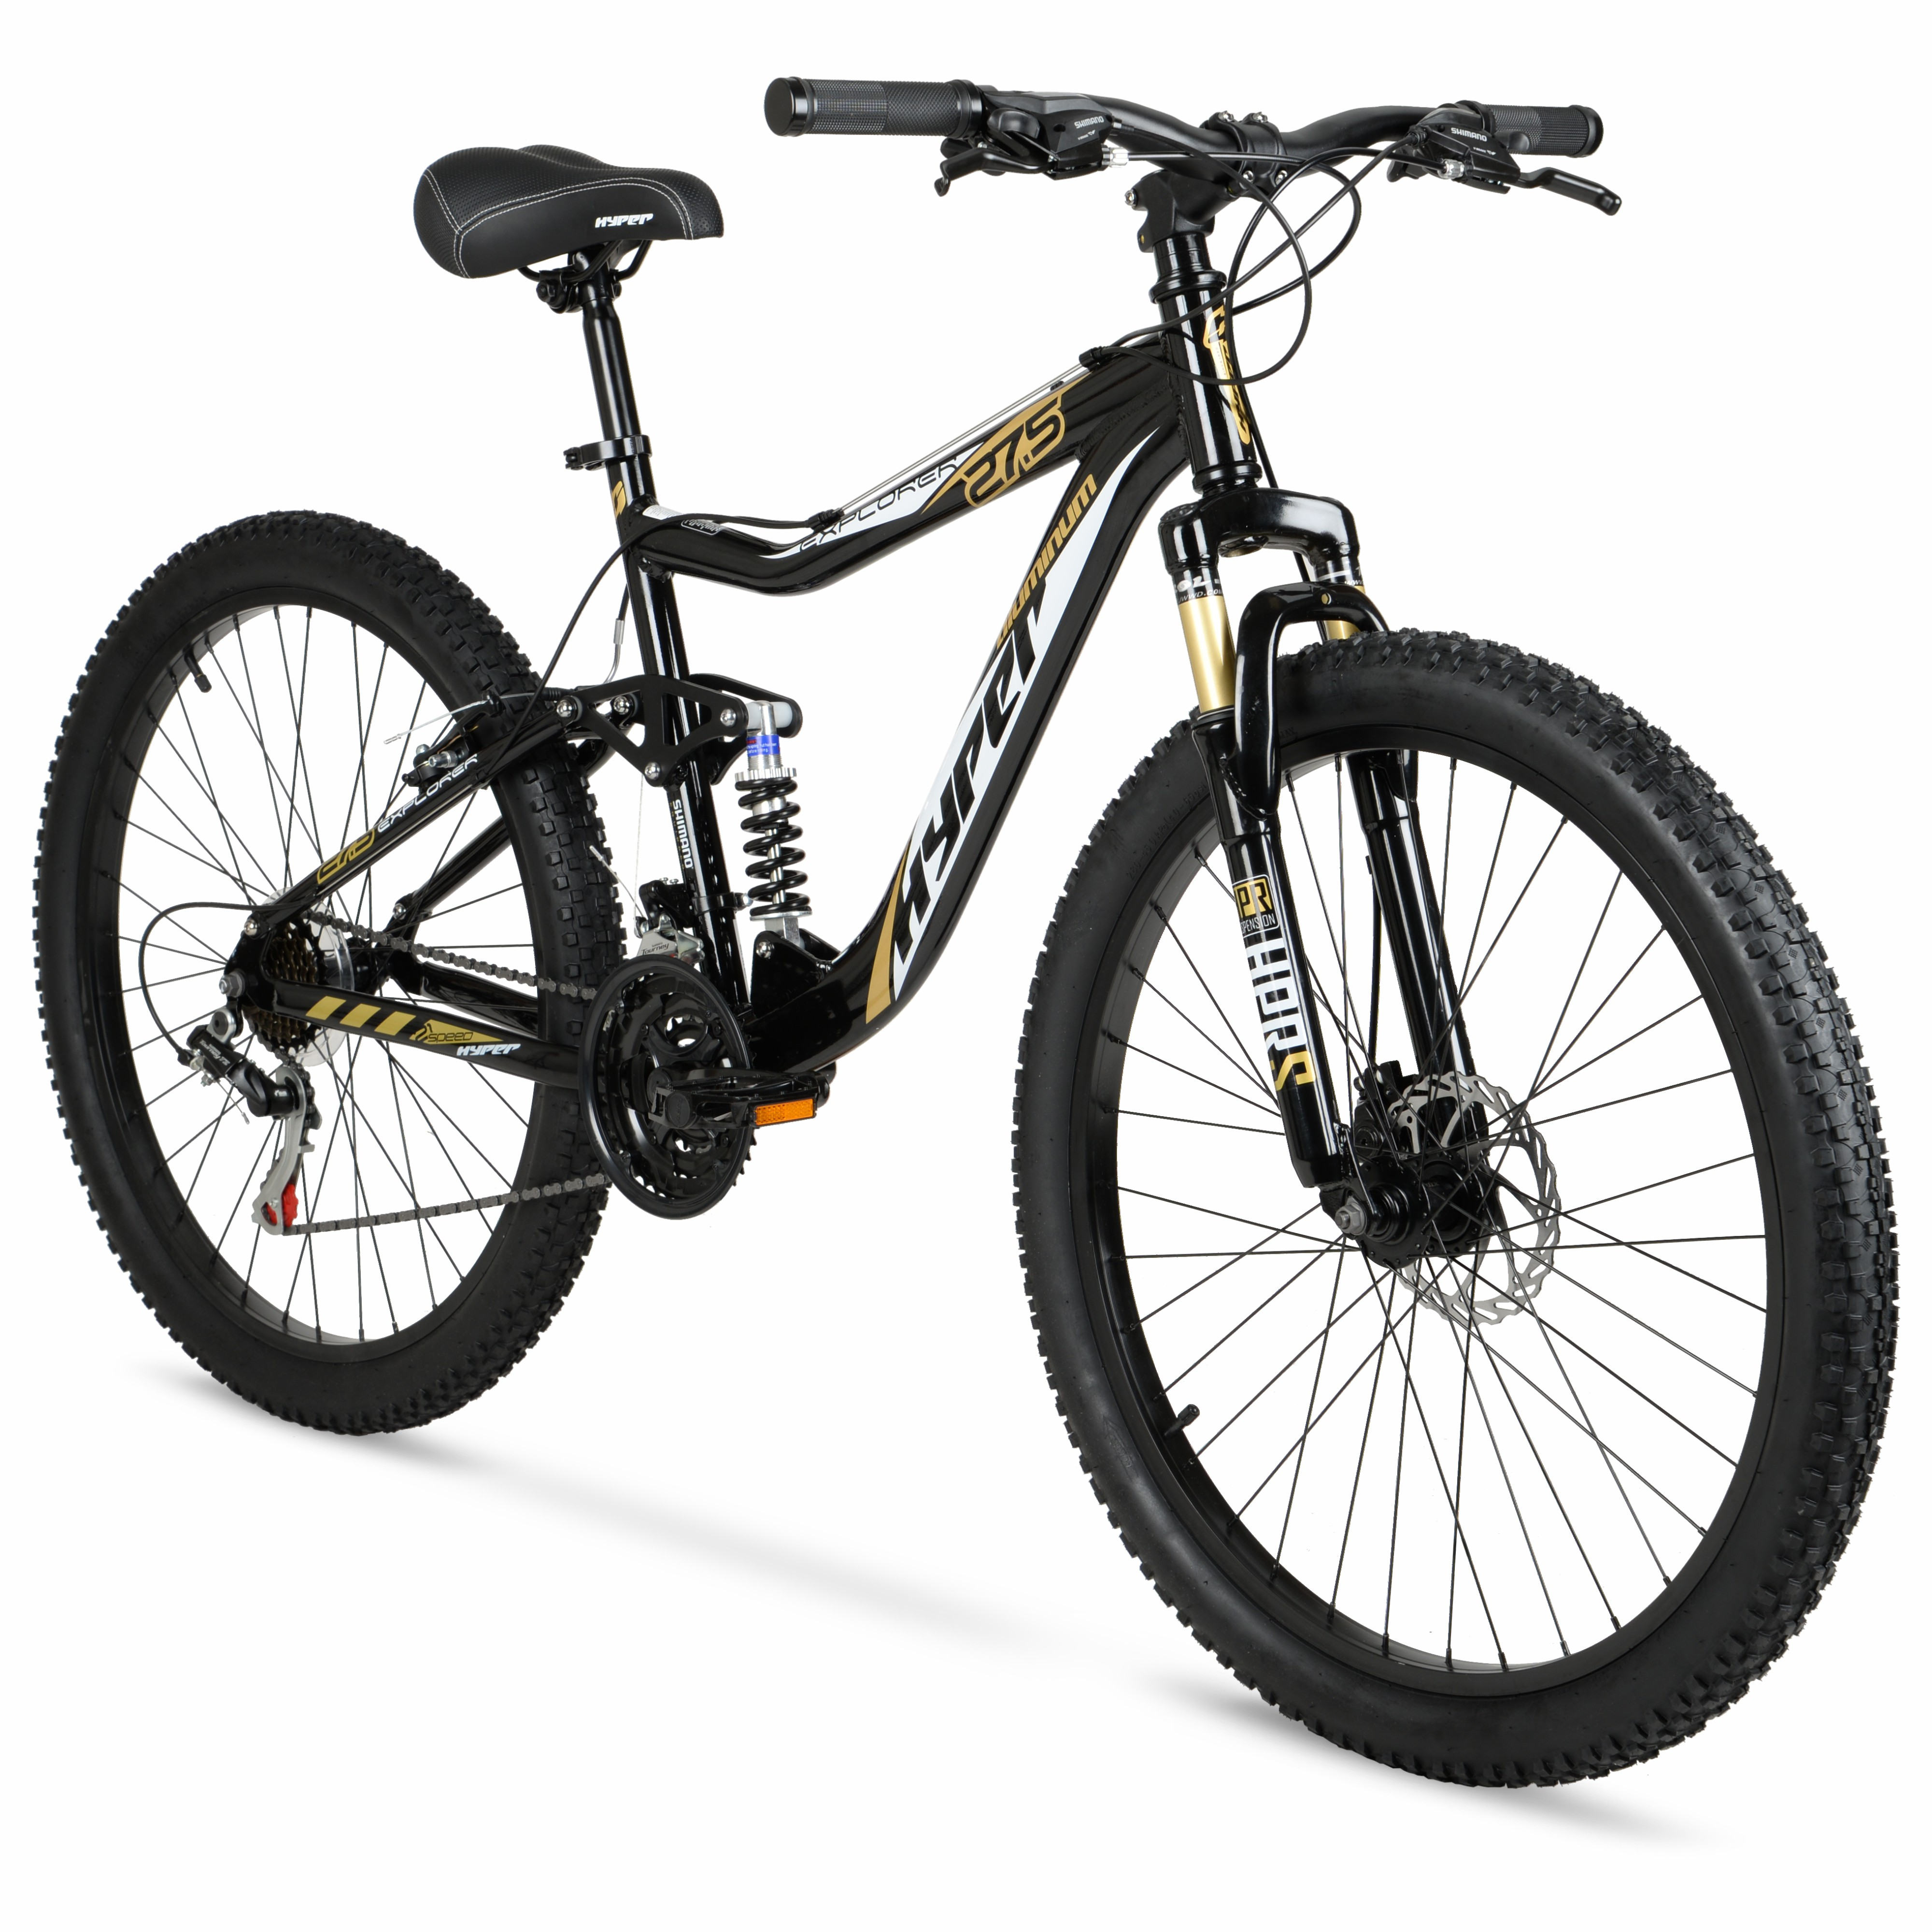 "Hyper 27.5"" Men's Explorer Mountain Bike"